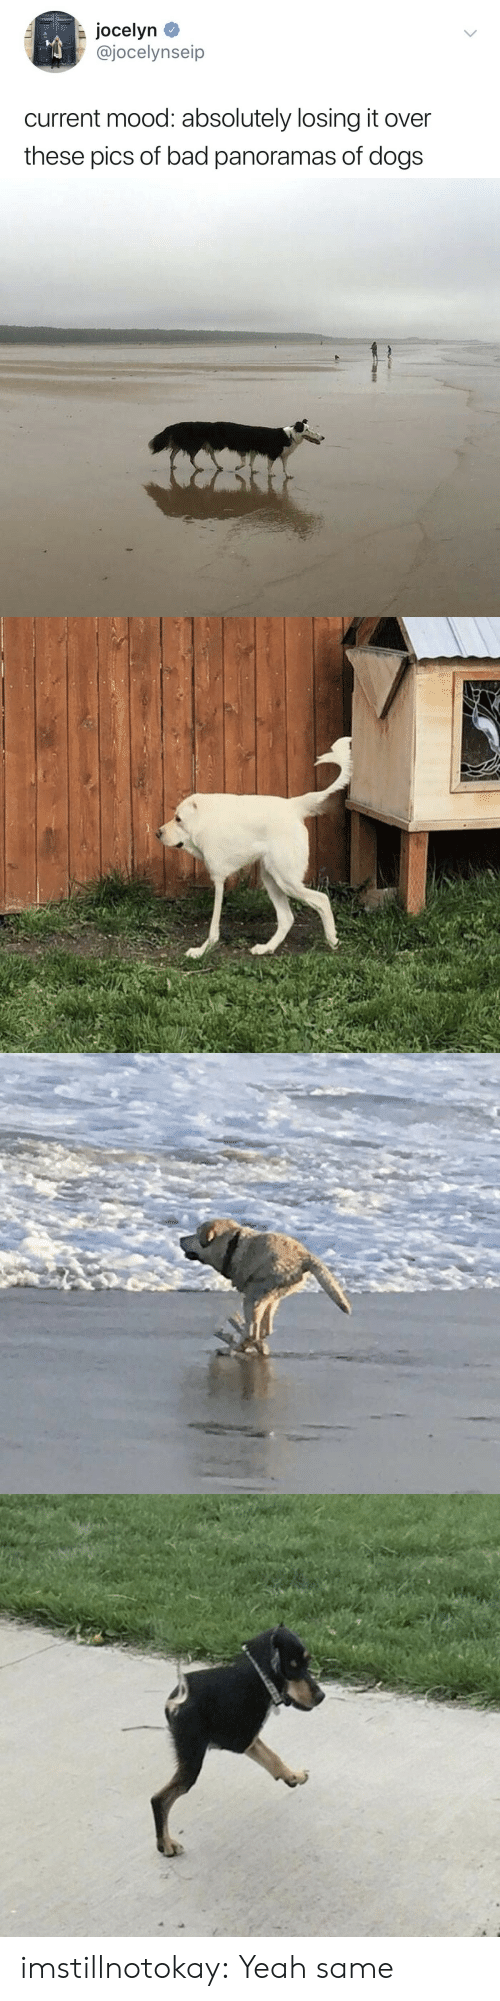 It Over: Jocelyn  @jocelynseip  current mood: absolutely losing it over  these pics of bad panoramas of dogs imstillnotokay:  Yeah same